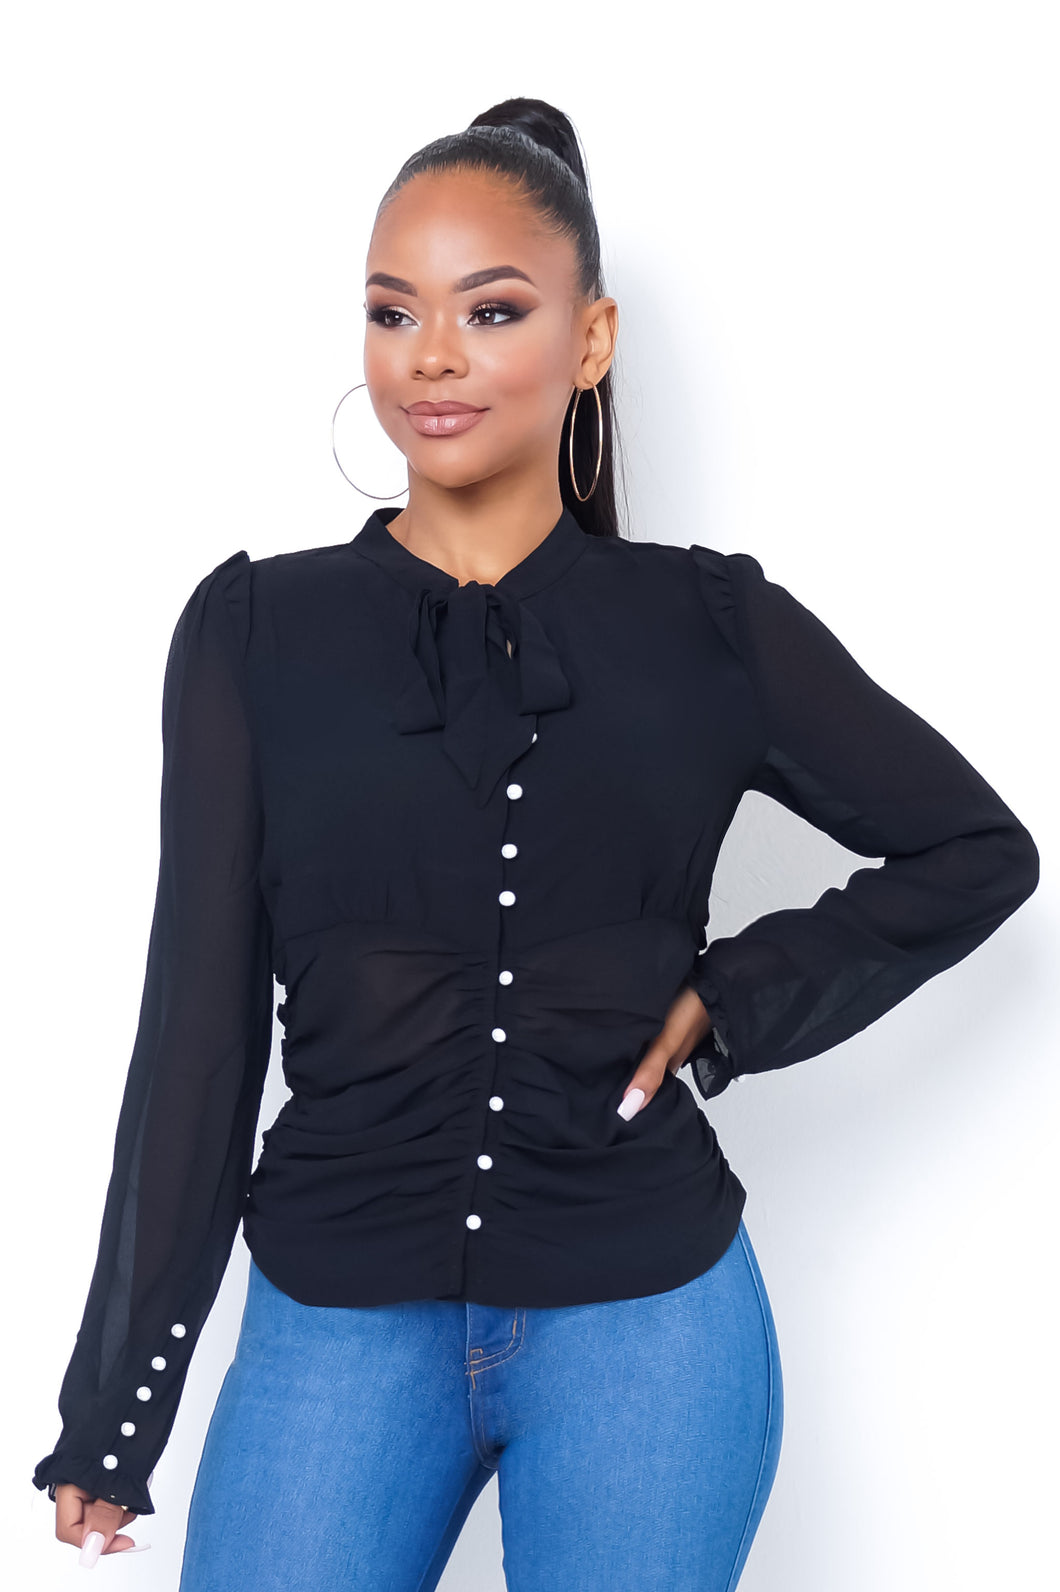 Strictly Business Top - Black